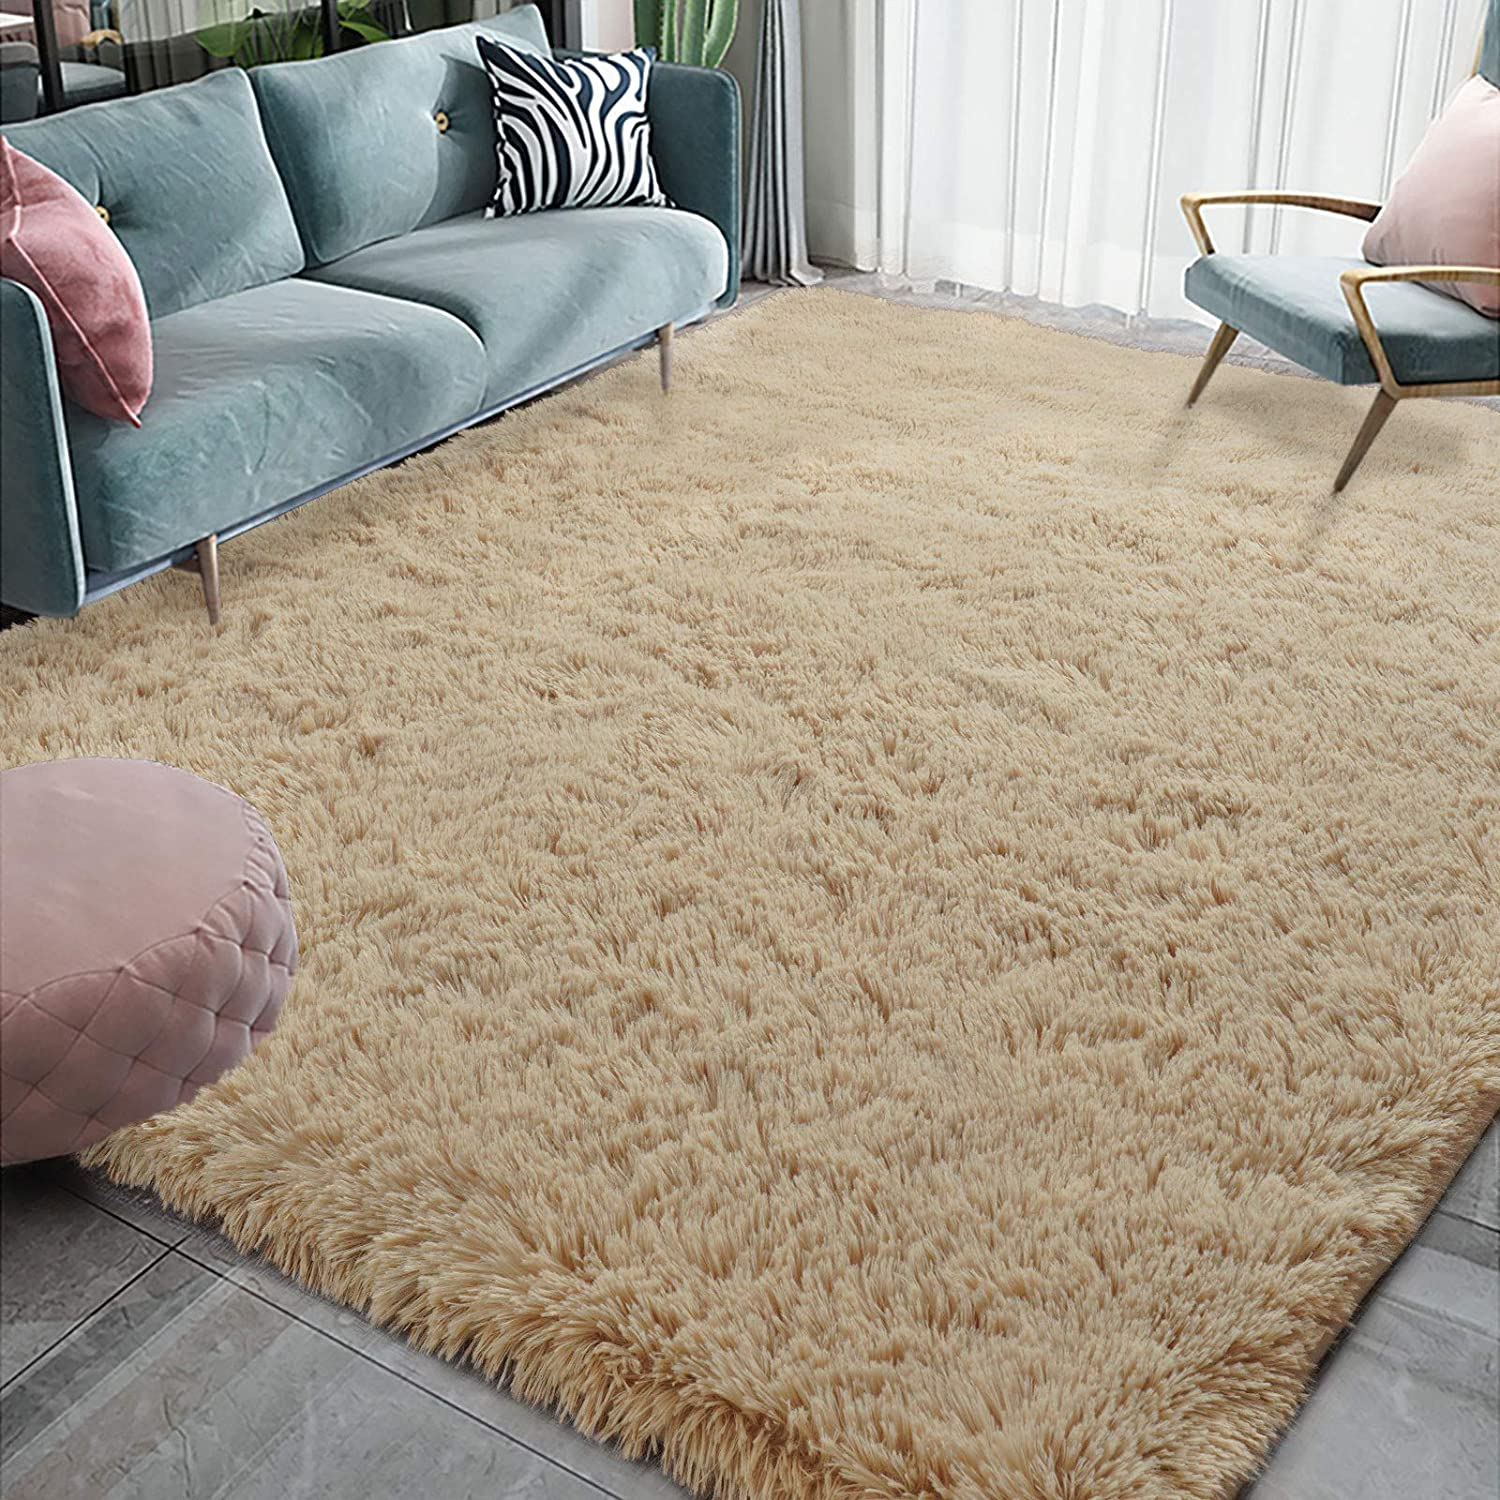 Homore Luxury Fluffy Area Rug Modern ! Super beauty product restock quality top! Shag Rugs Livin Fees free for Bedroom